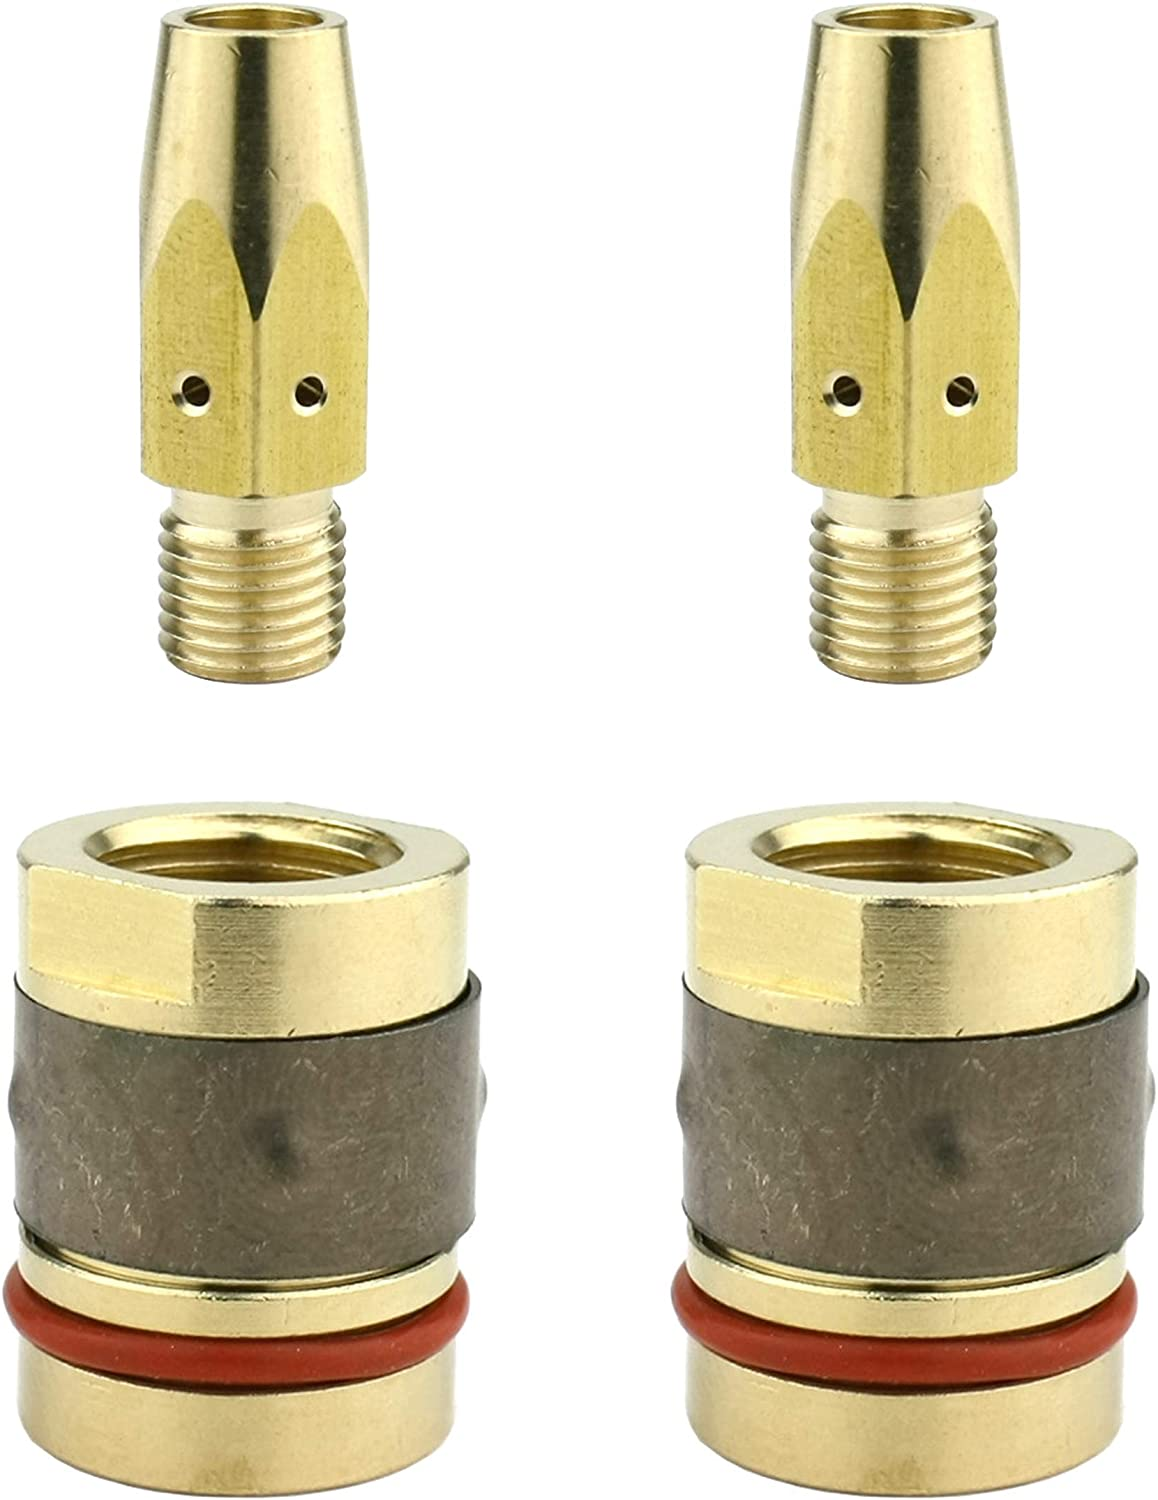 Nozzle Adaptor Models: 169-728 /& 169-729 - Replacement for Miller M-25 /& M-40 MIG Guns Gas Diffuser 2 PAIRS